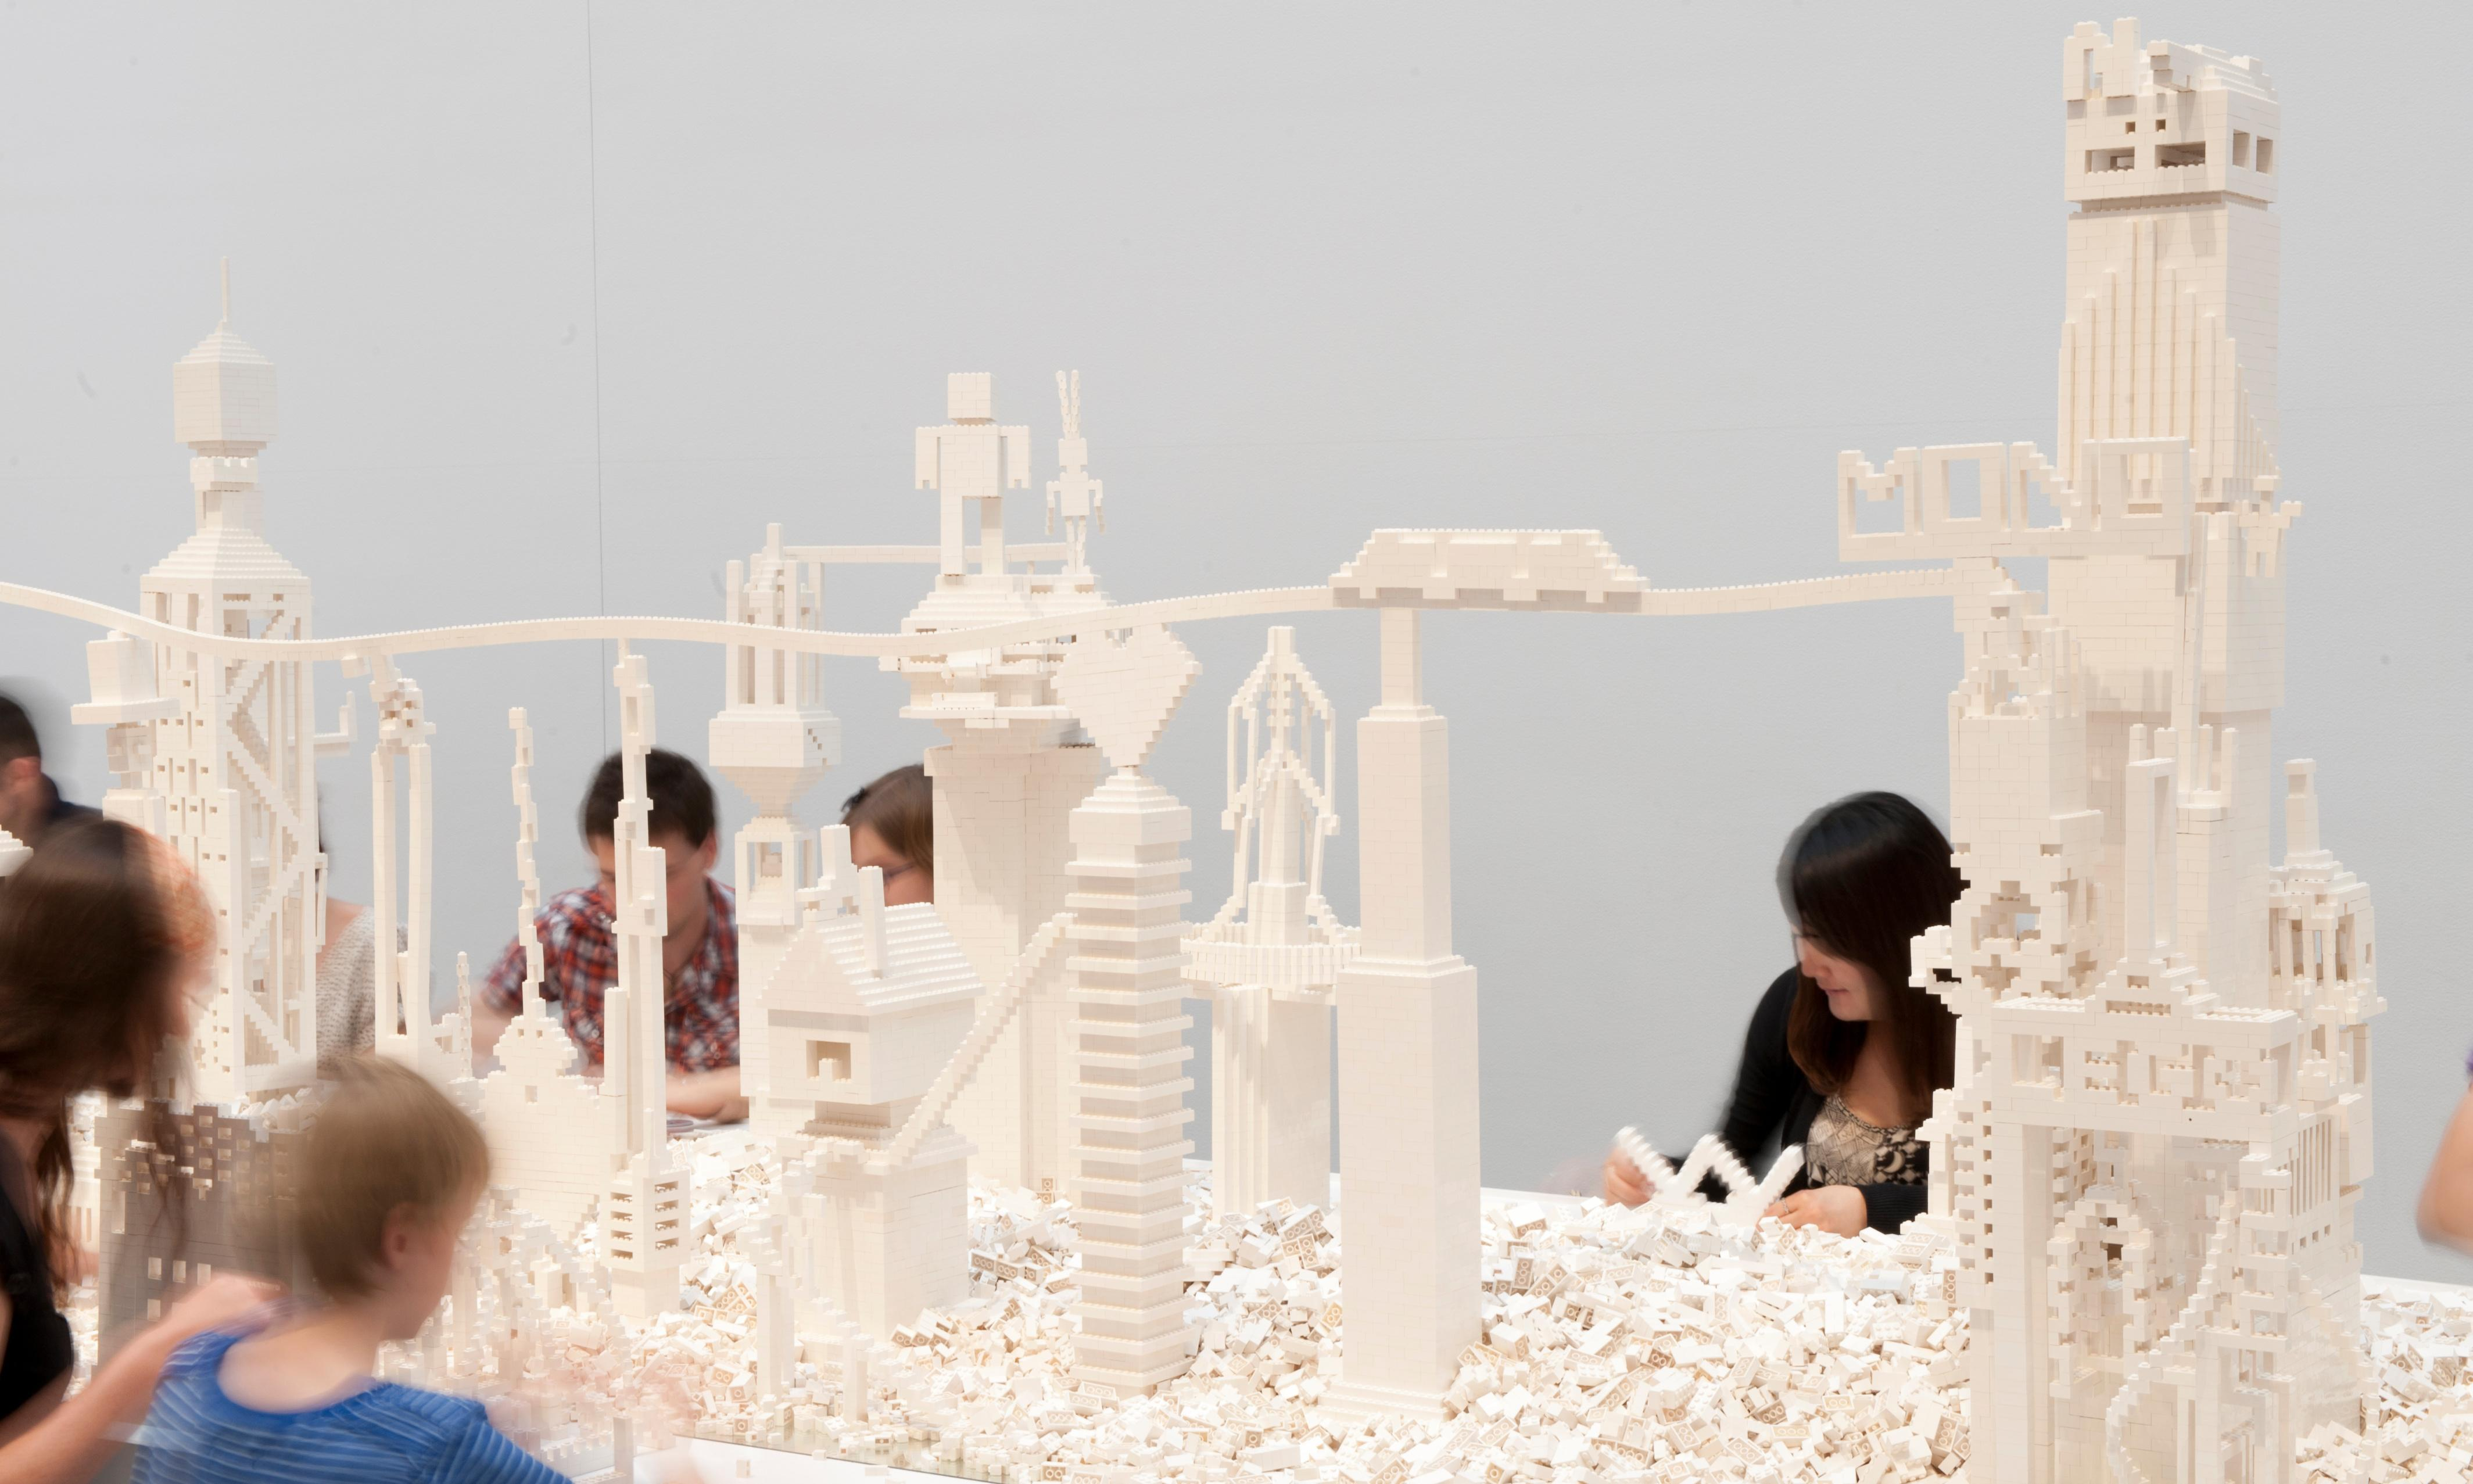 Olafur Eliasson returns to Tate Modern with tonne of white Lego